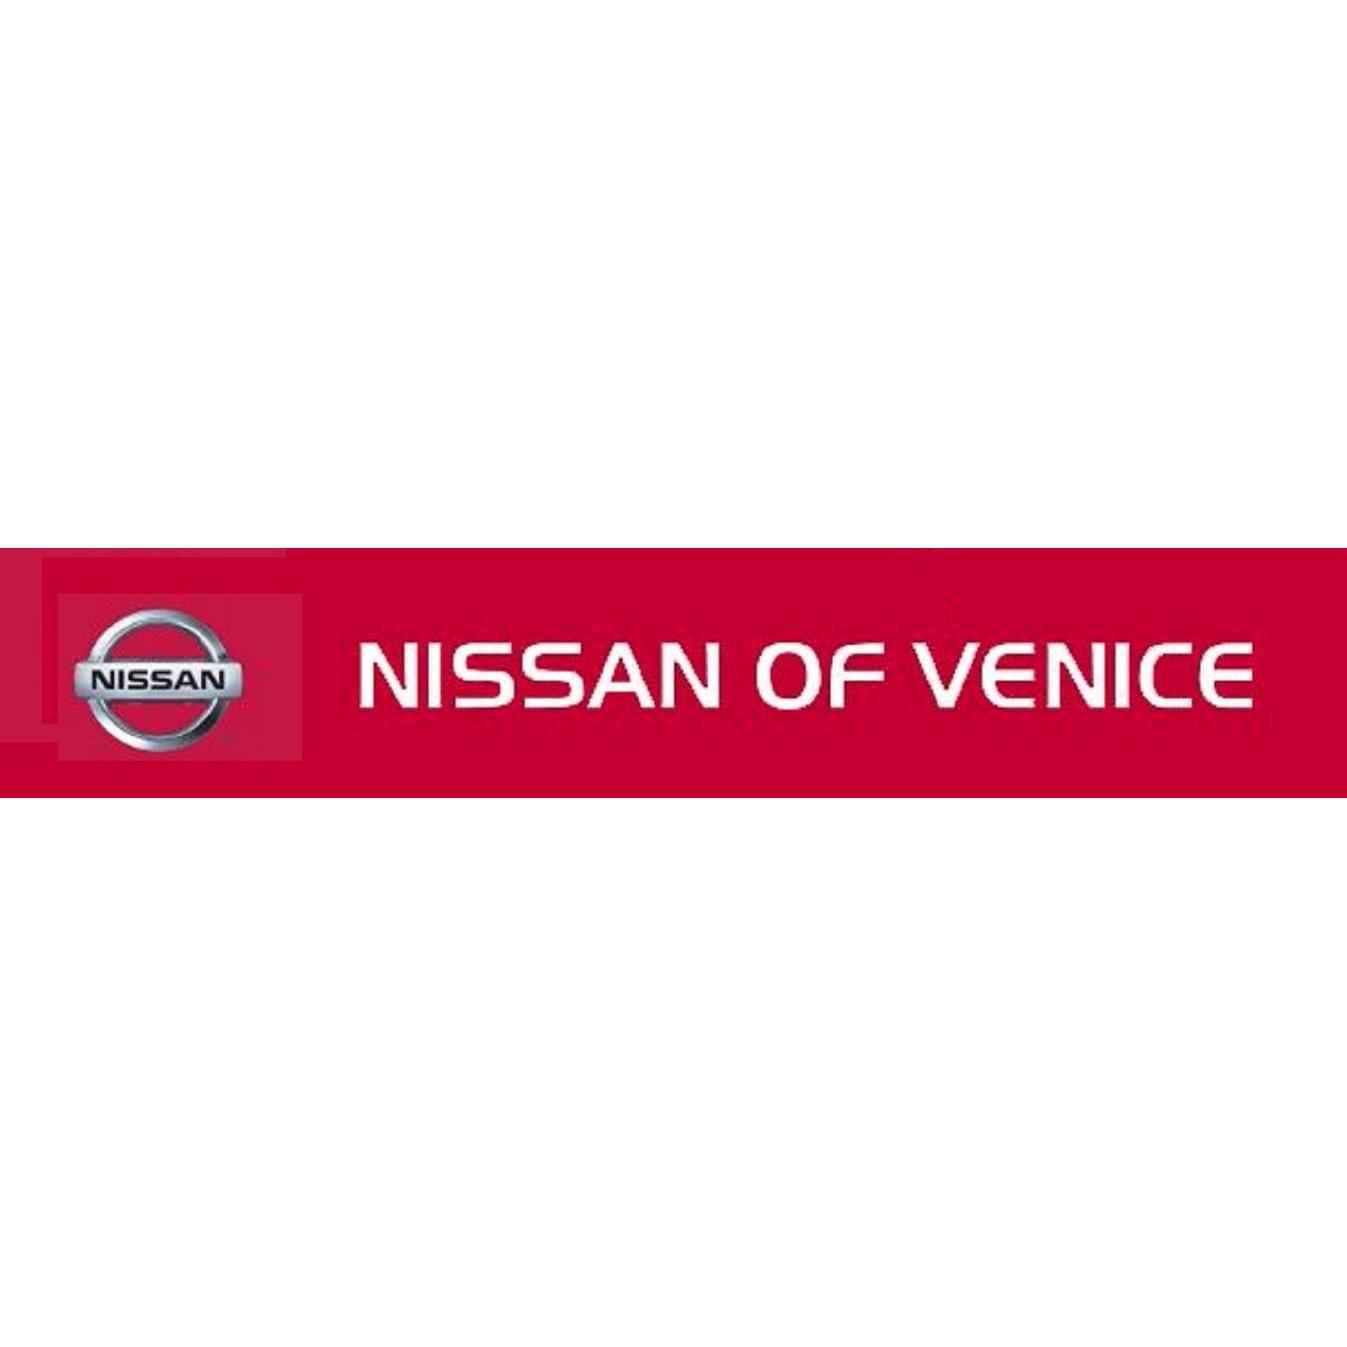 The All New Nissan Of Venice